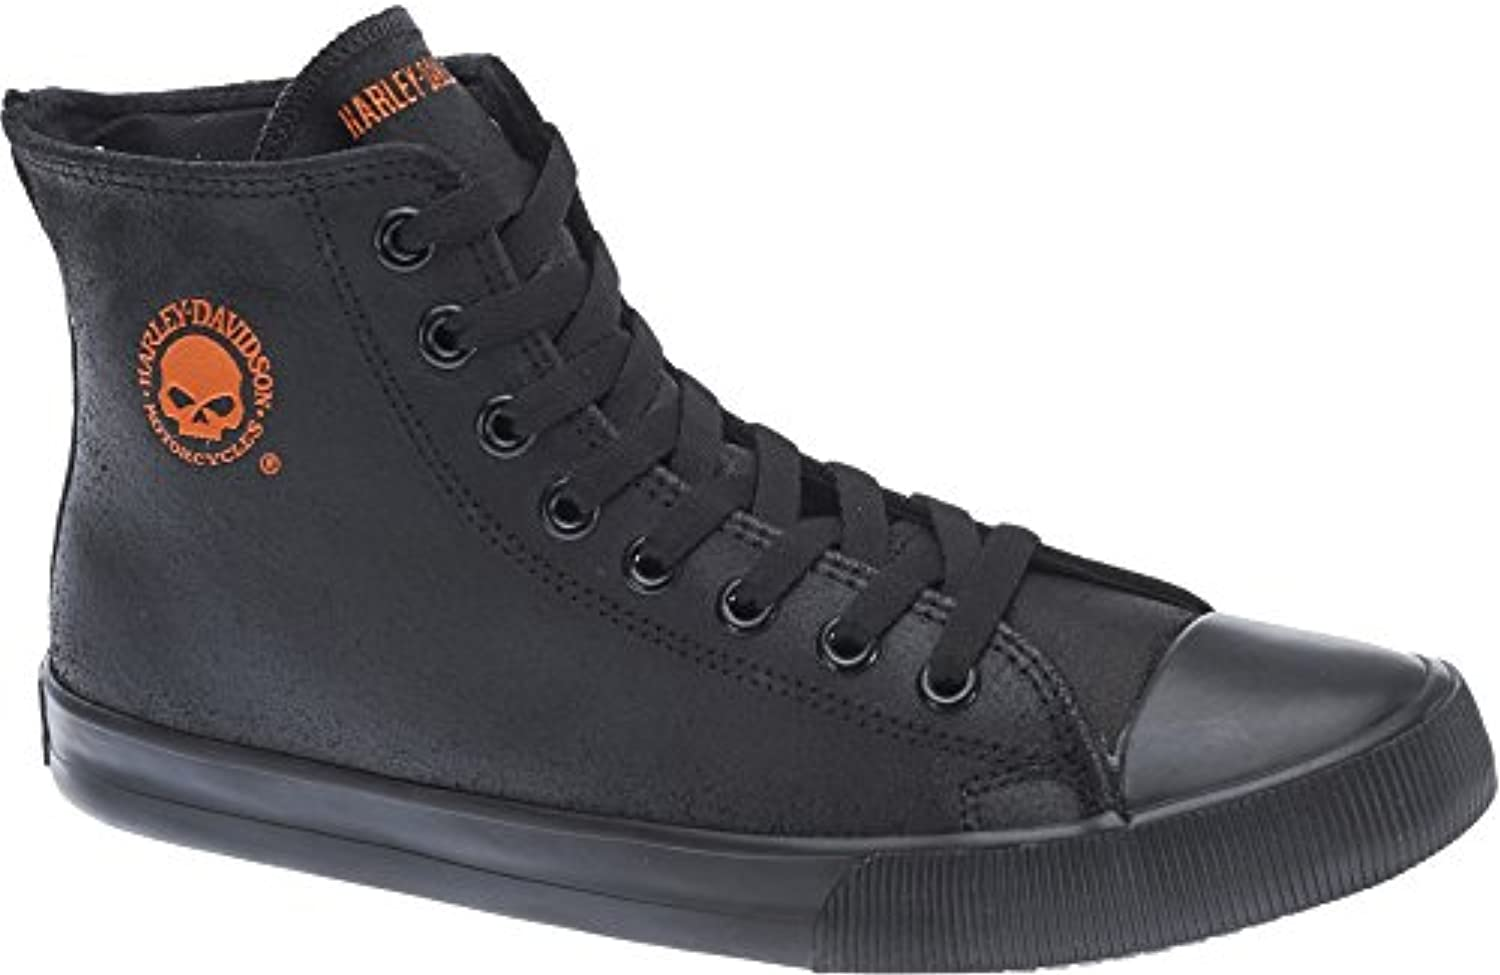 Donna Uomo Harley Davidson Mens Baxter Leather Trainers